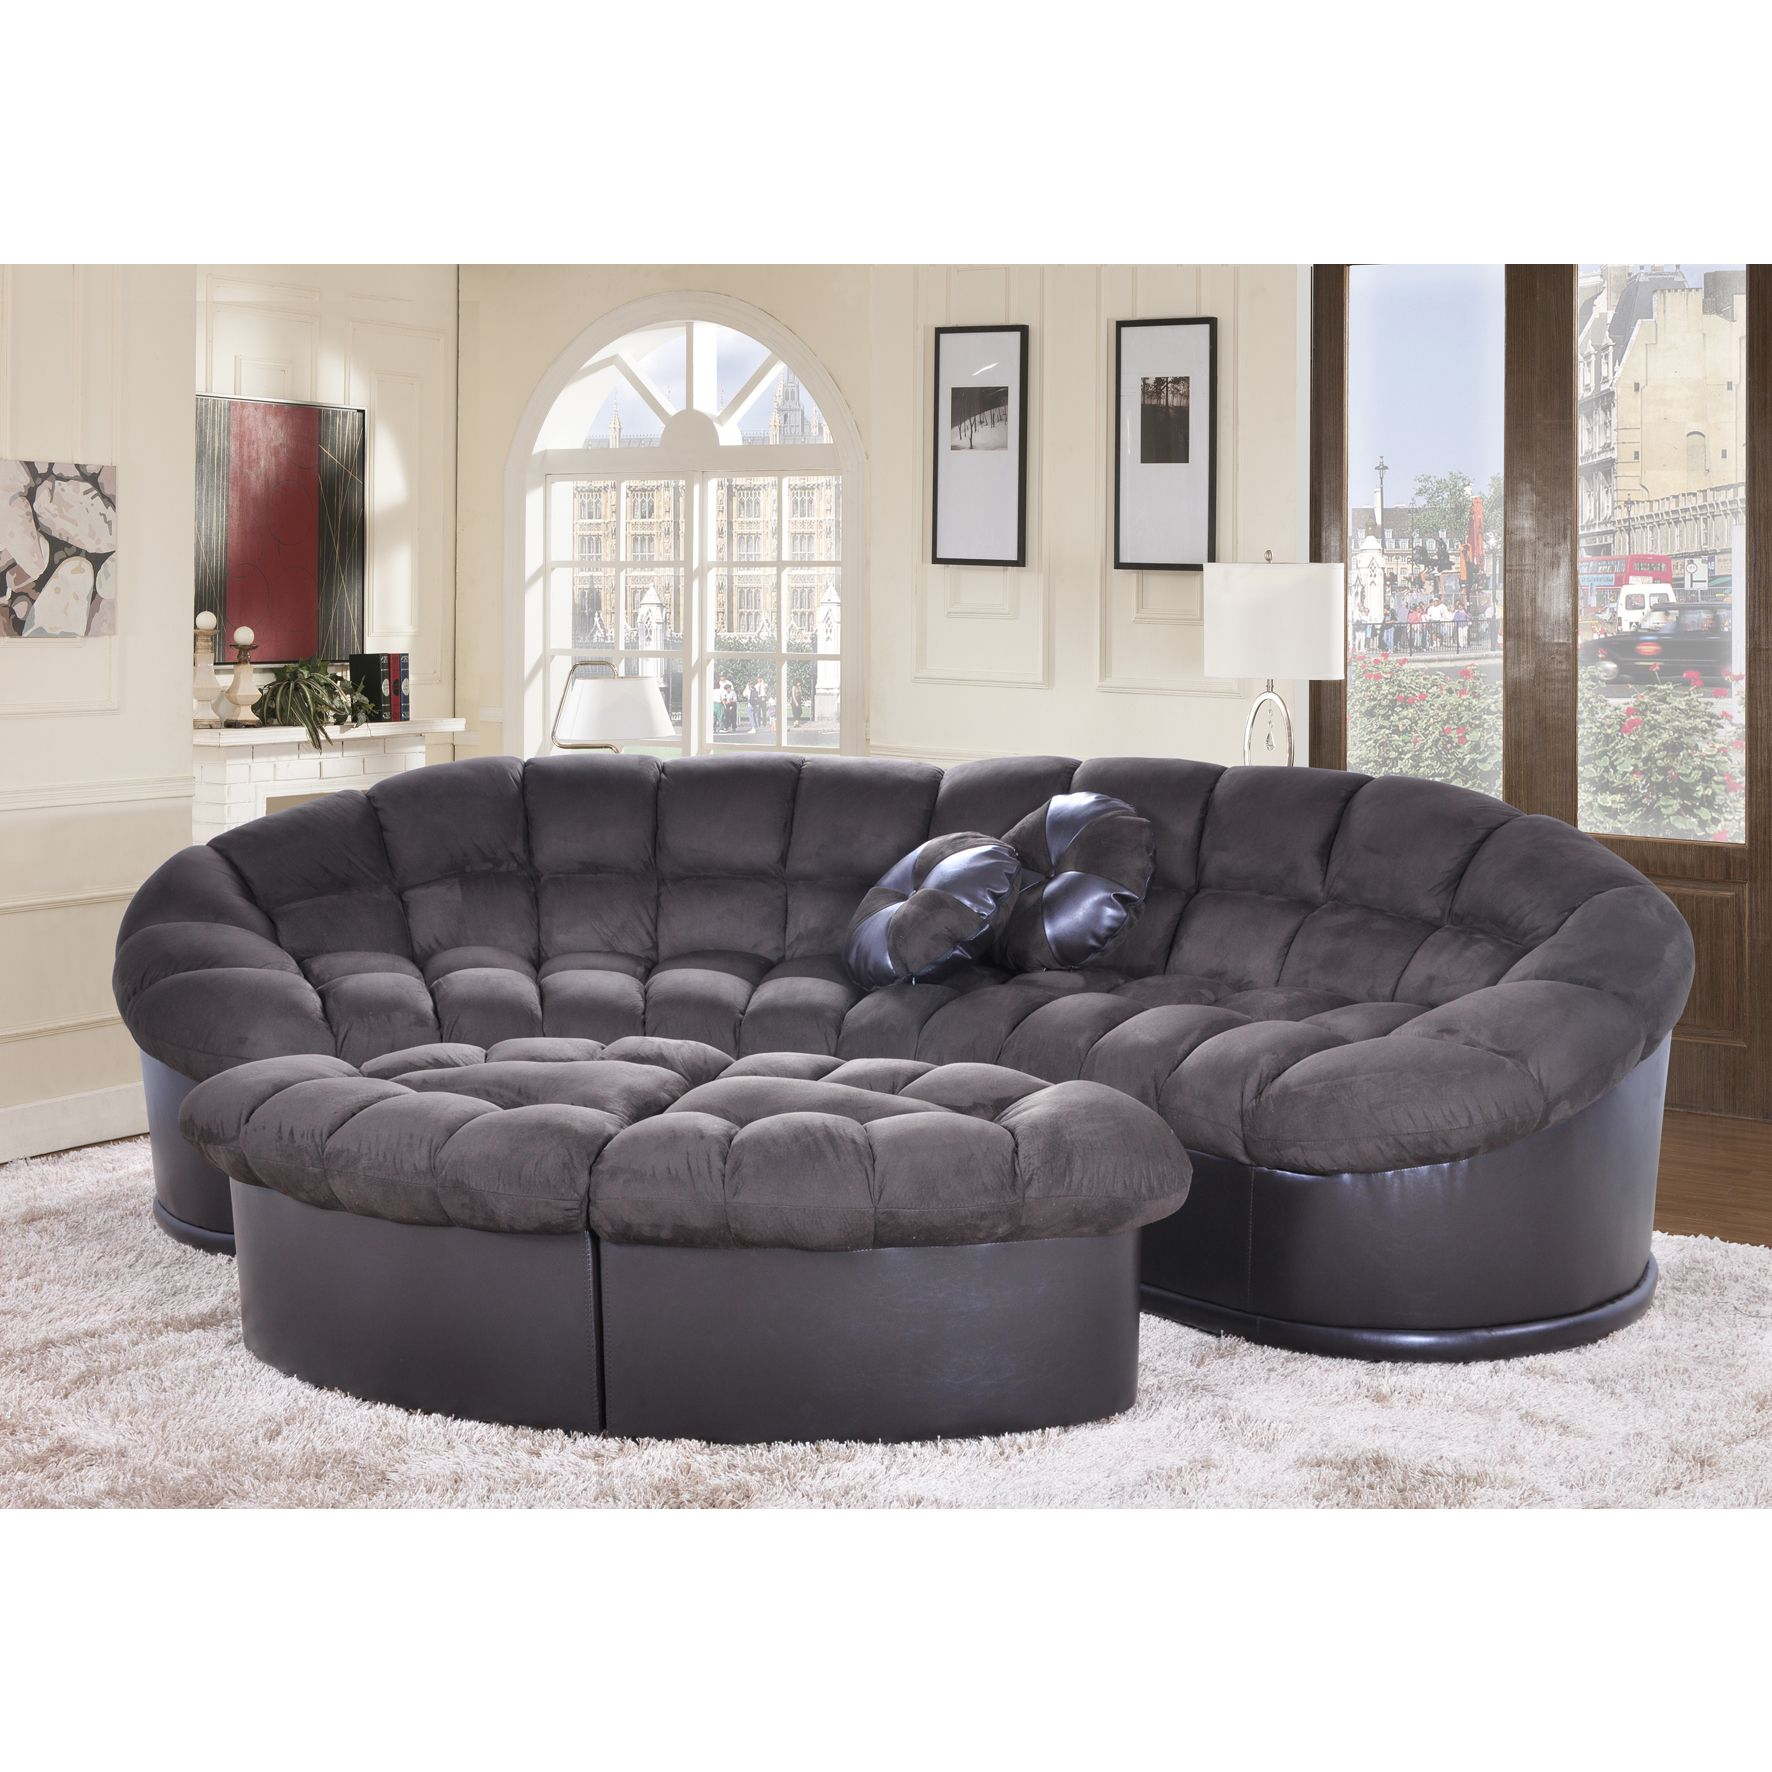 Diana 4 piece chocolate papasan modern microfiber sofa and - Microfiber living room furniture sets ...